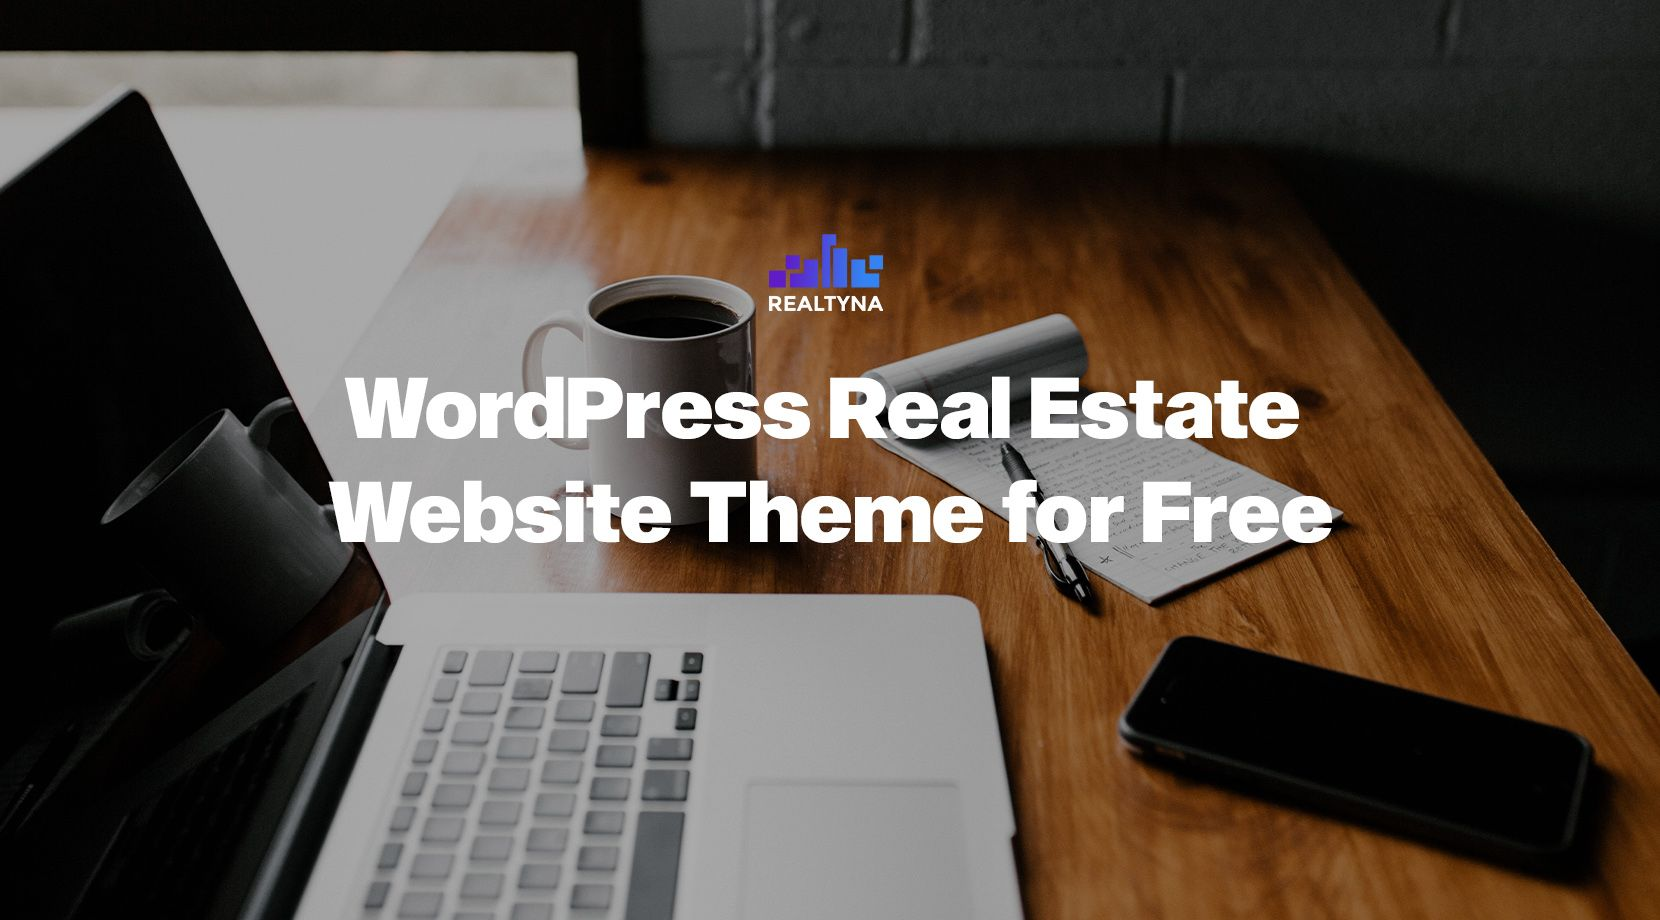 WordPress Real Estate Website Theme for Free